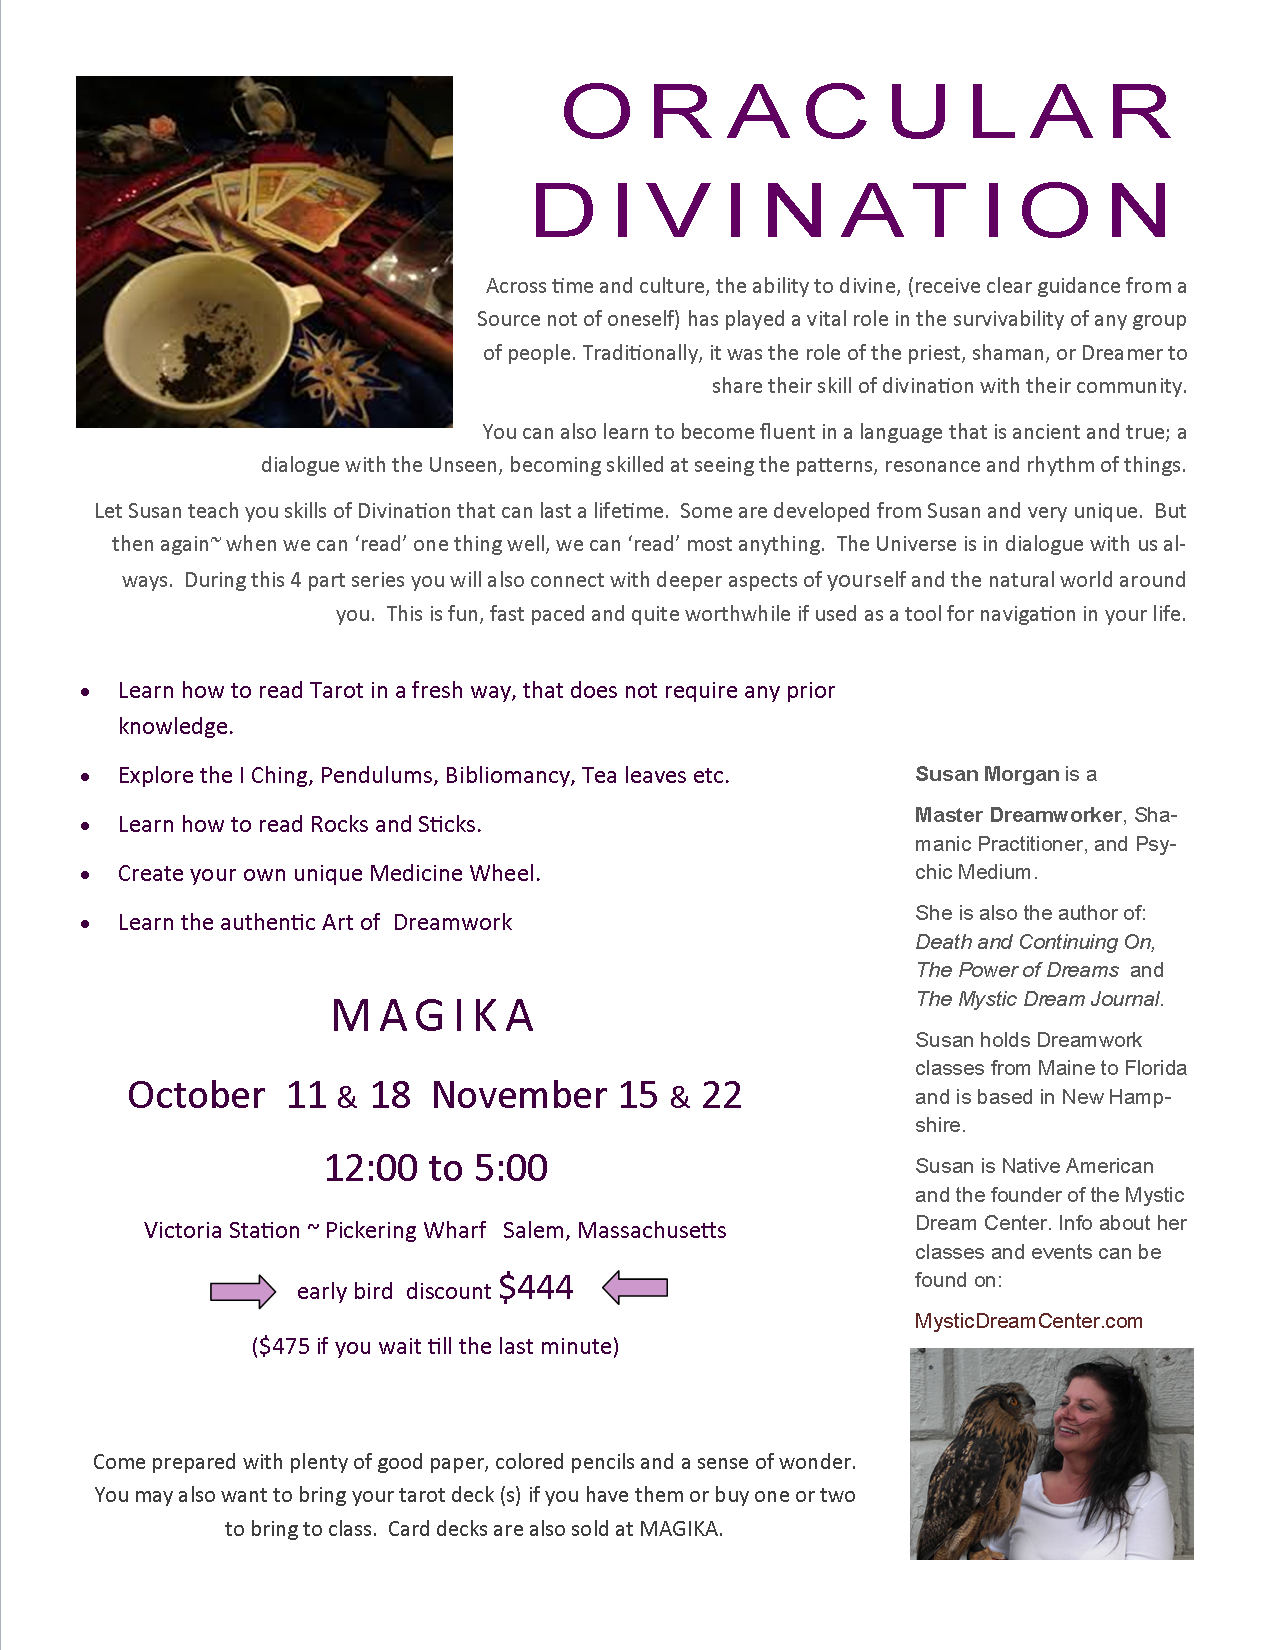 Oracular Divination 4 part series